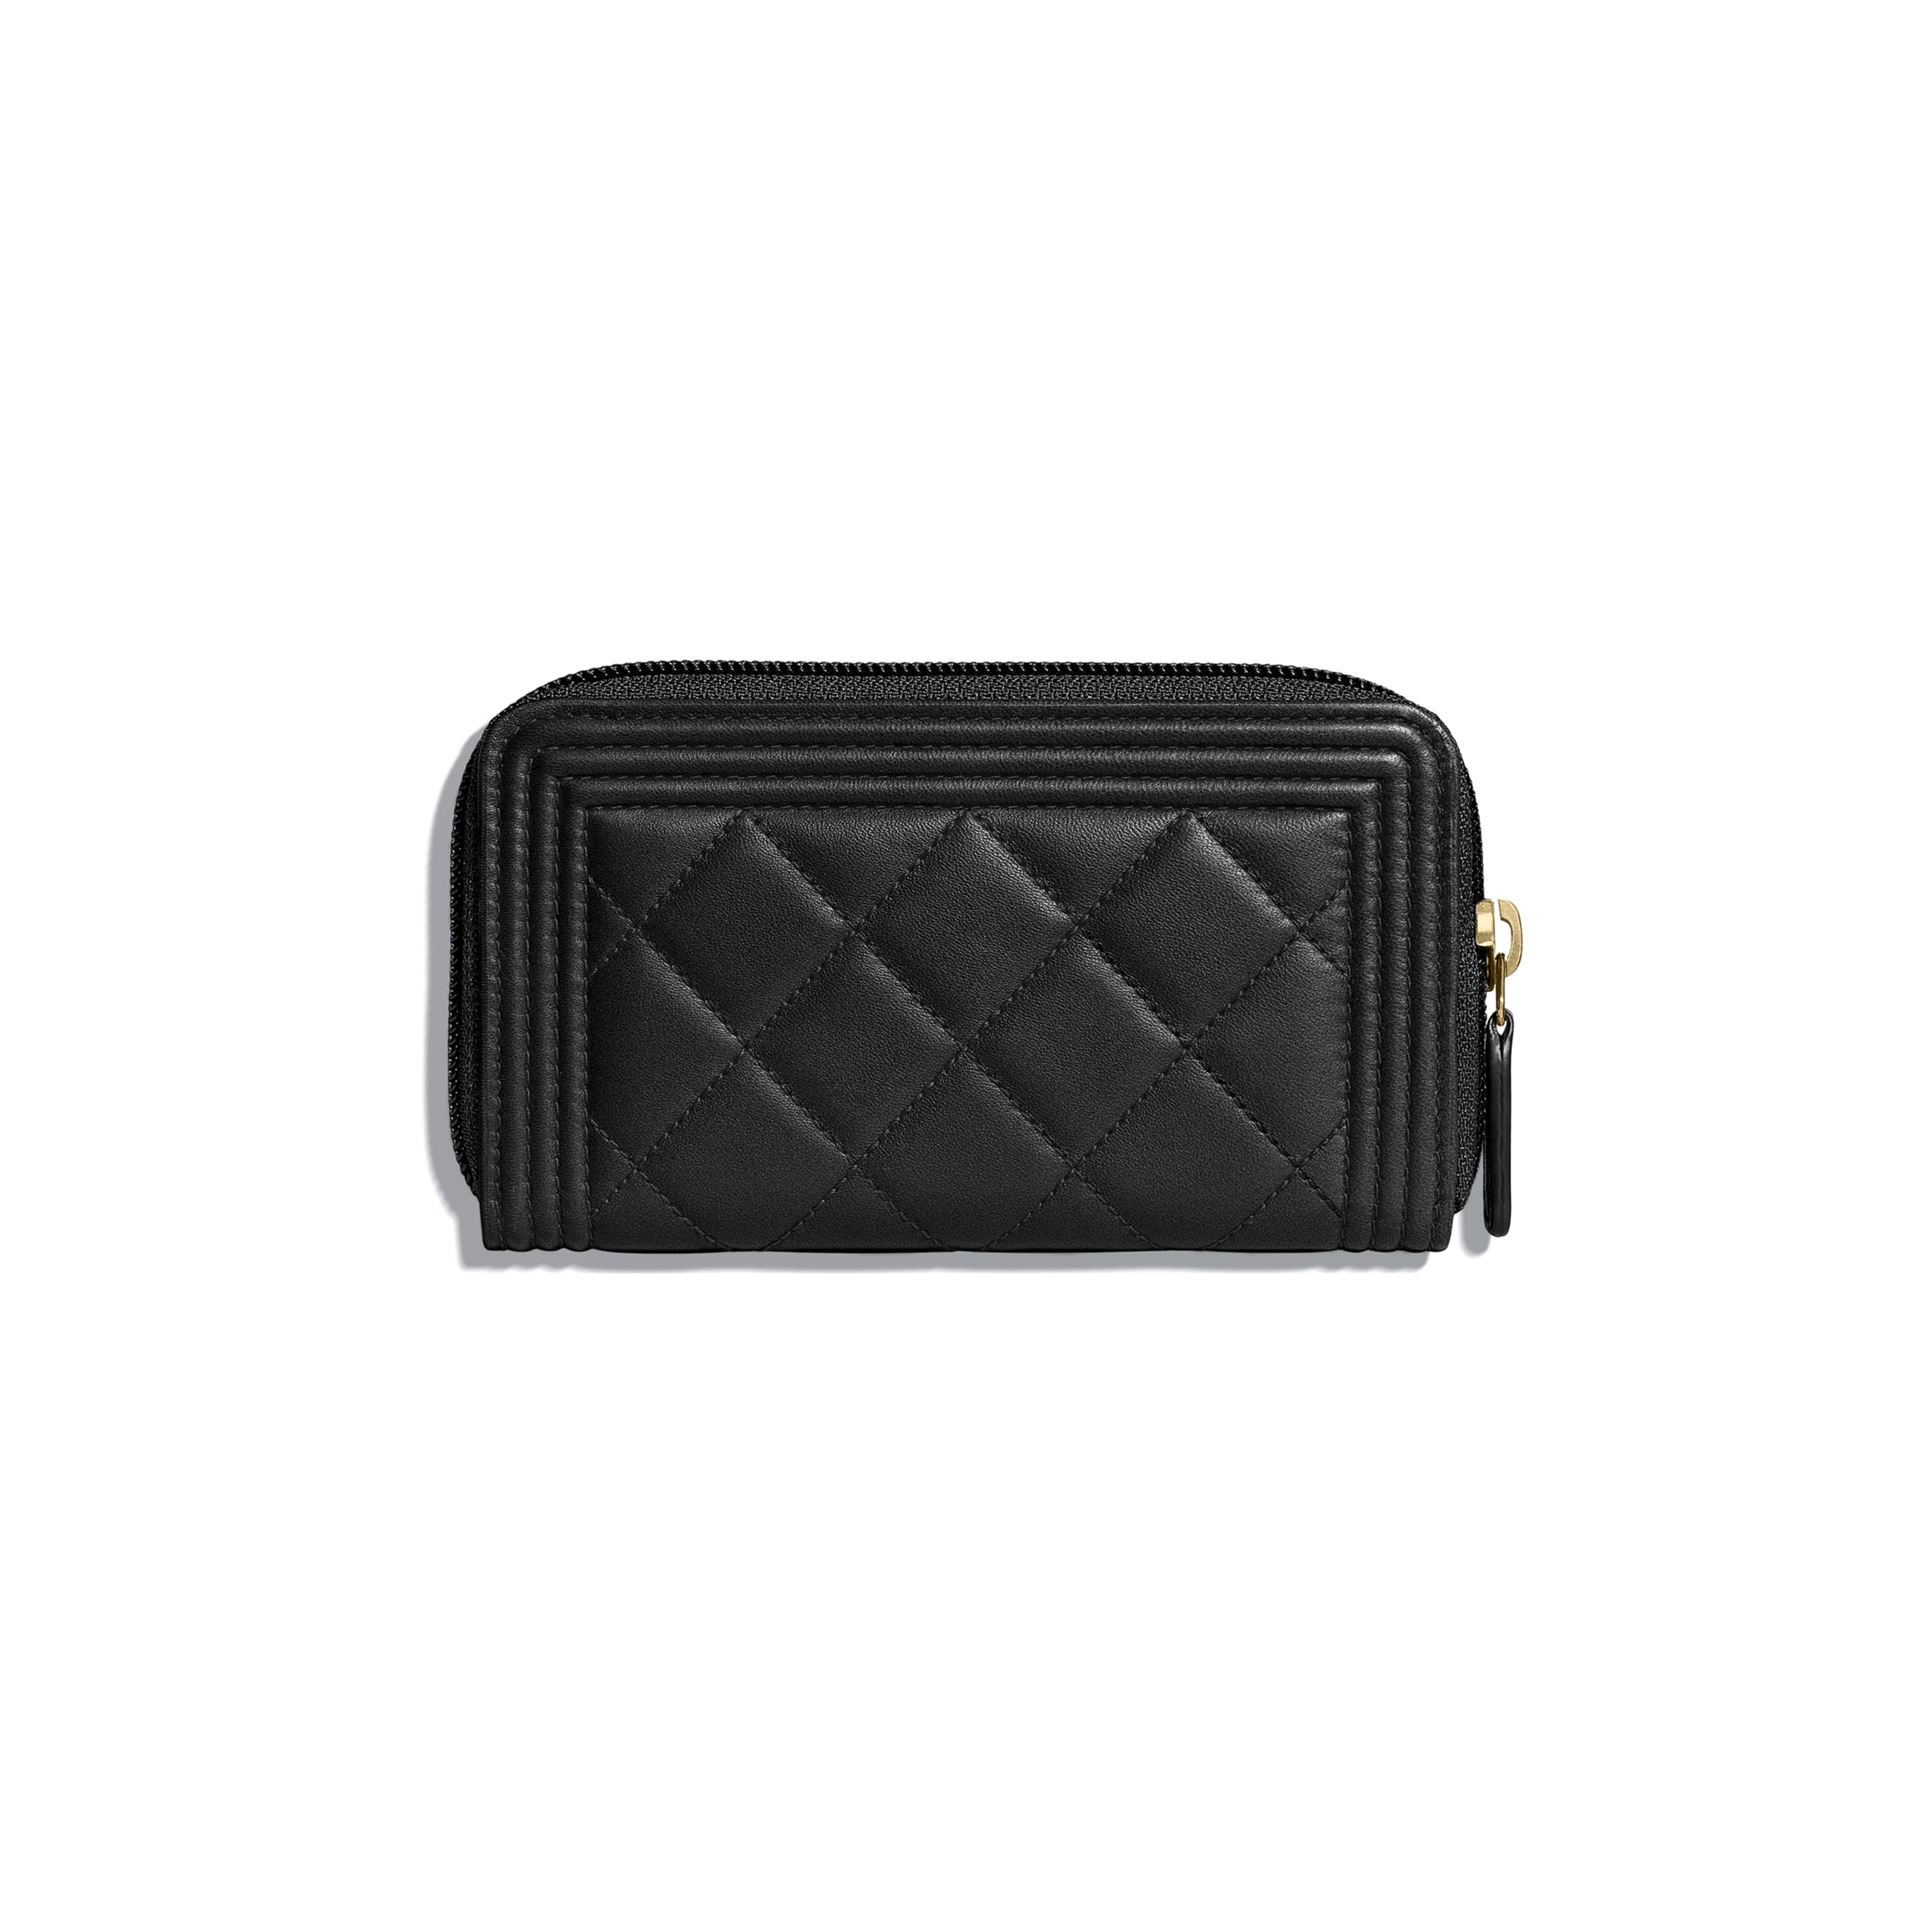 BOY CHANEL Zip Wallet - Black - Lambskin - CHANEL - Alternative view - see standard sized version